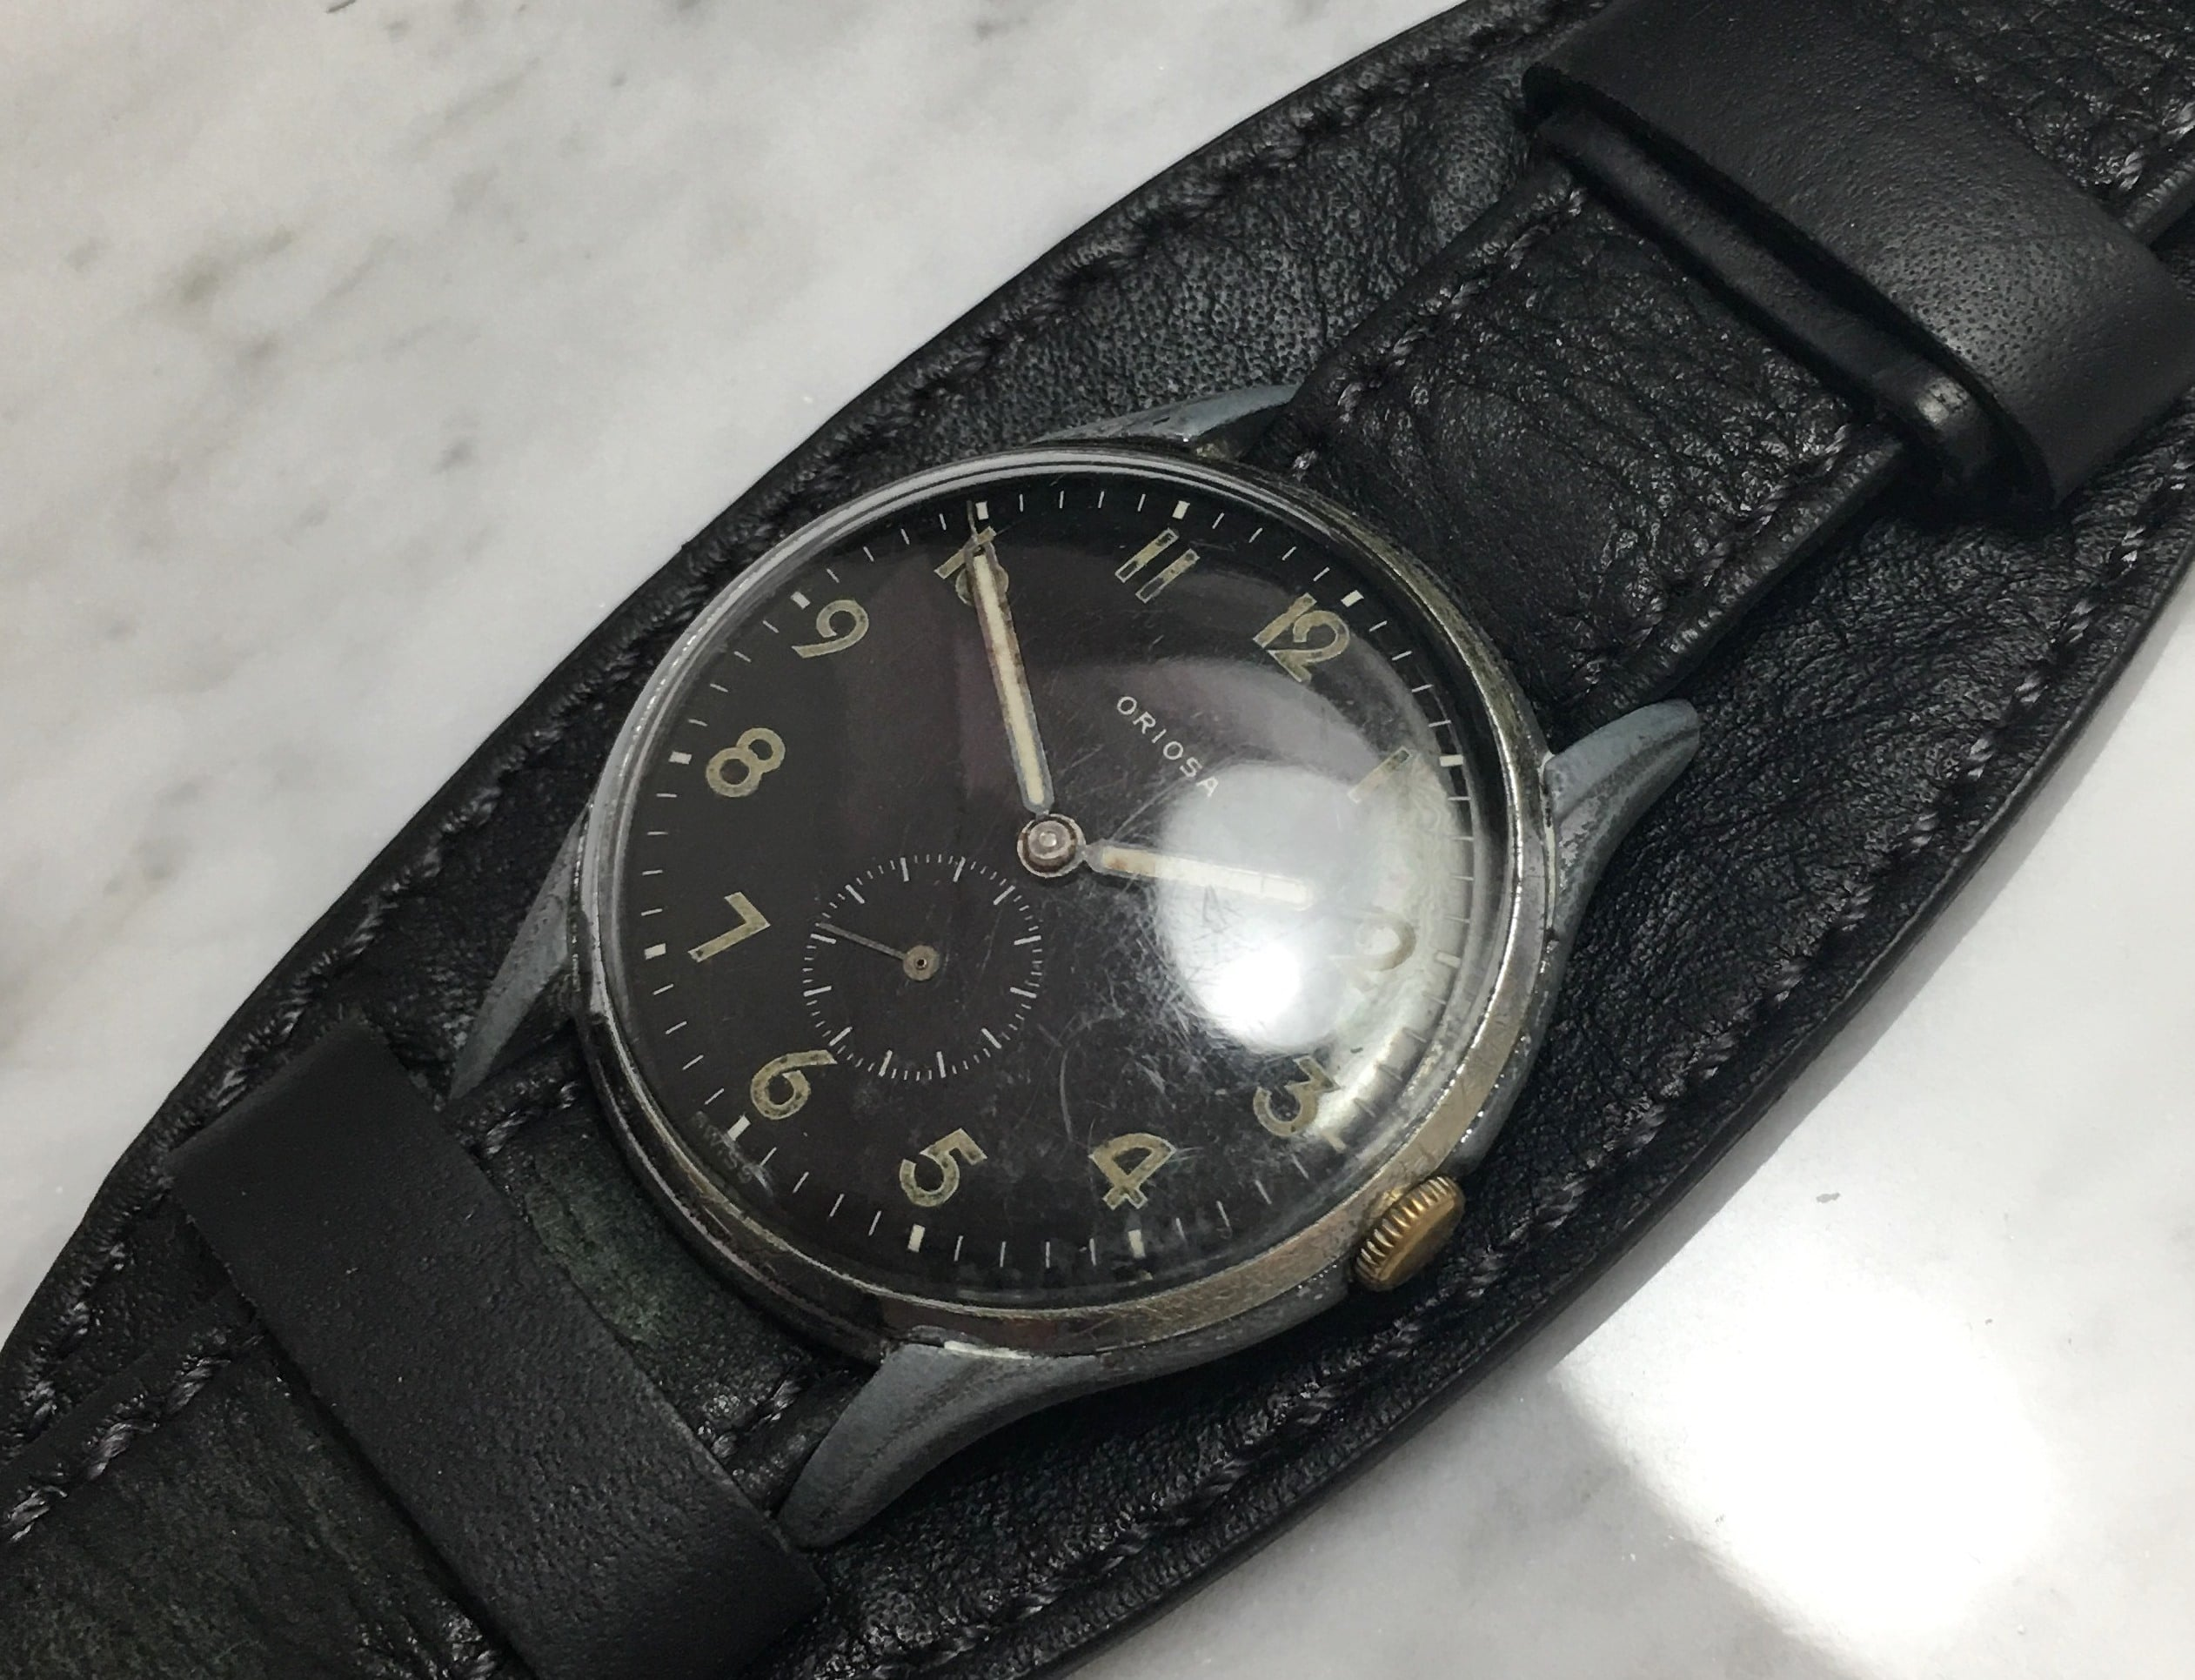 Jumbo Vintage Oriosa Military Watch